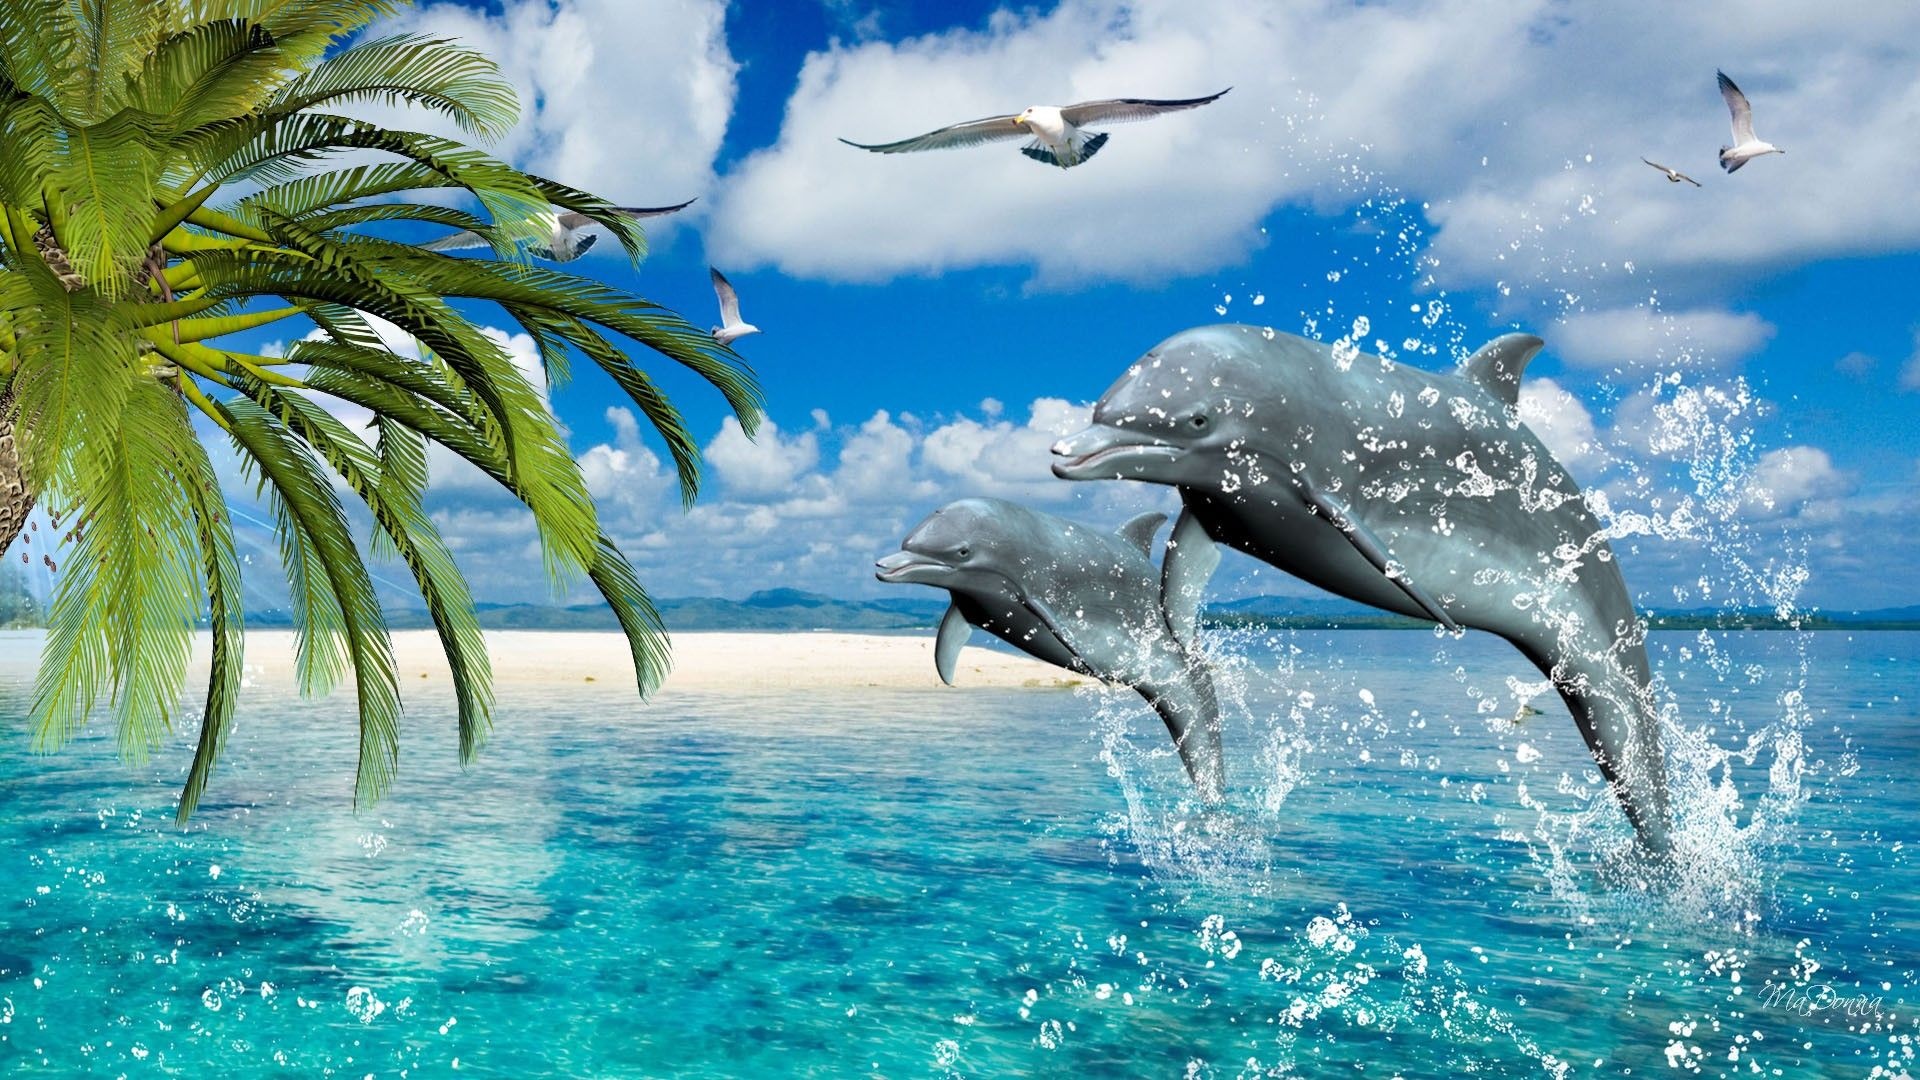 Tropical Dolphin Images Dolphins Summer Beach Wallpaper